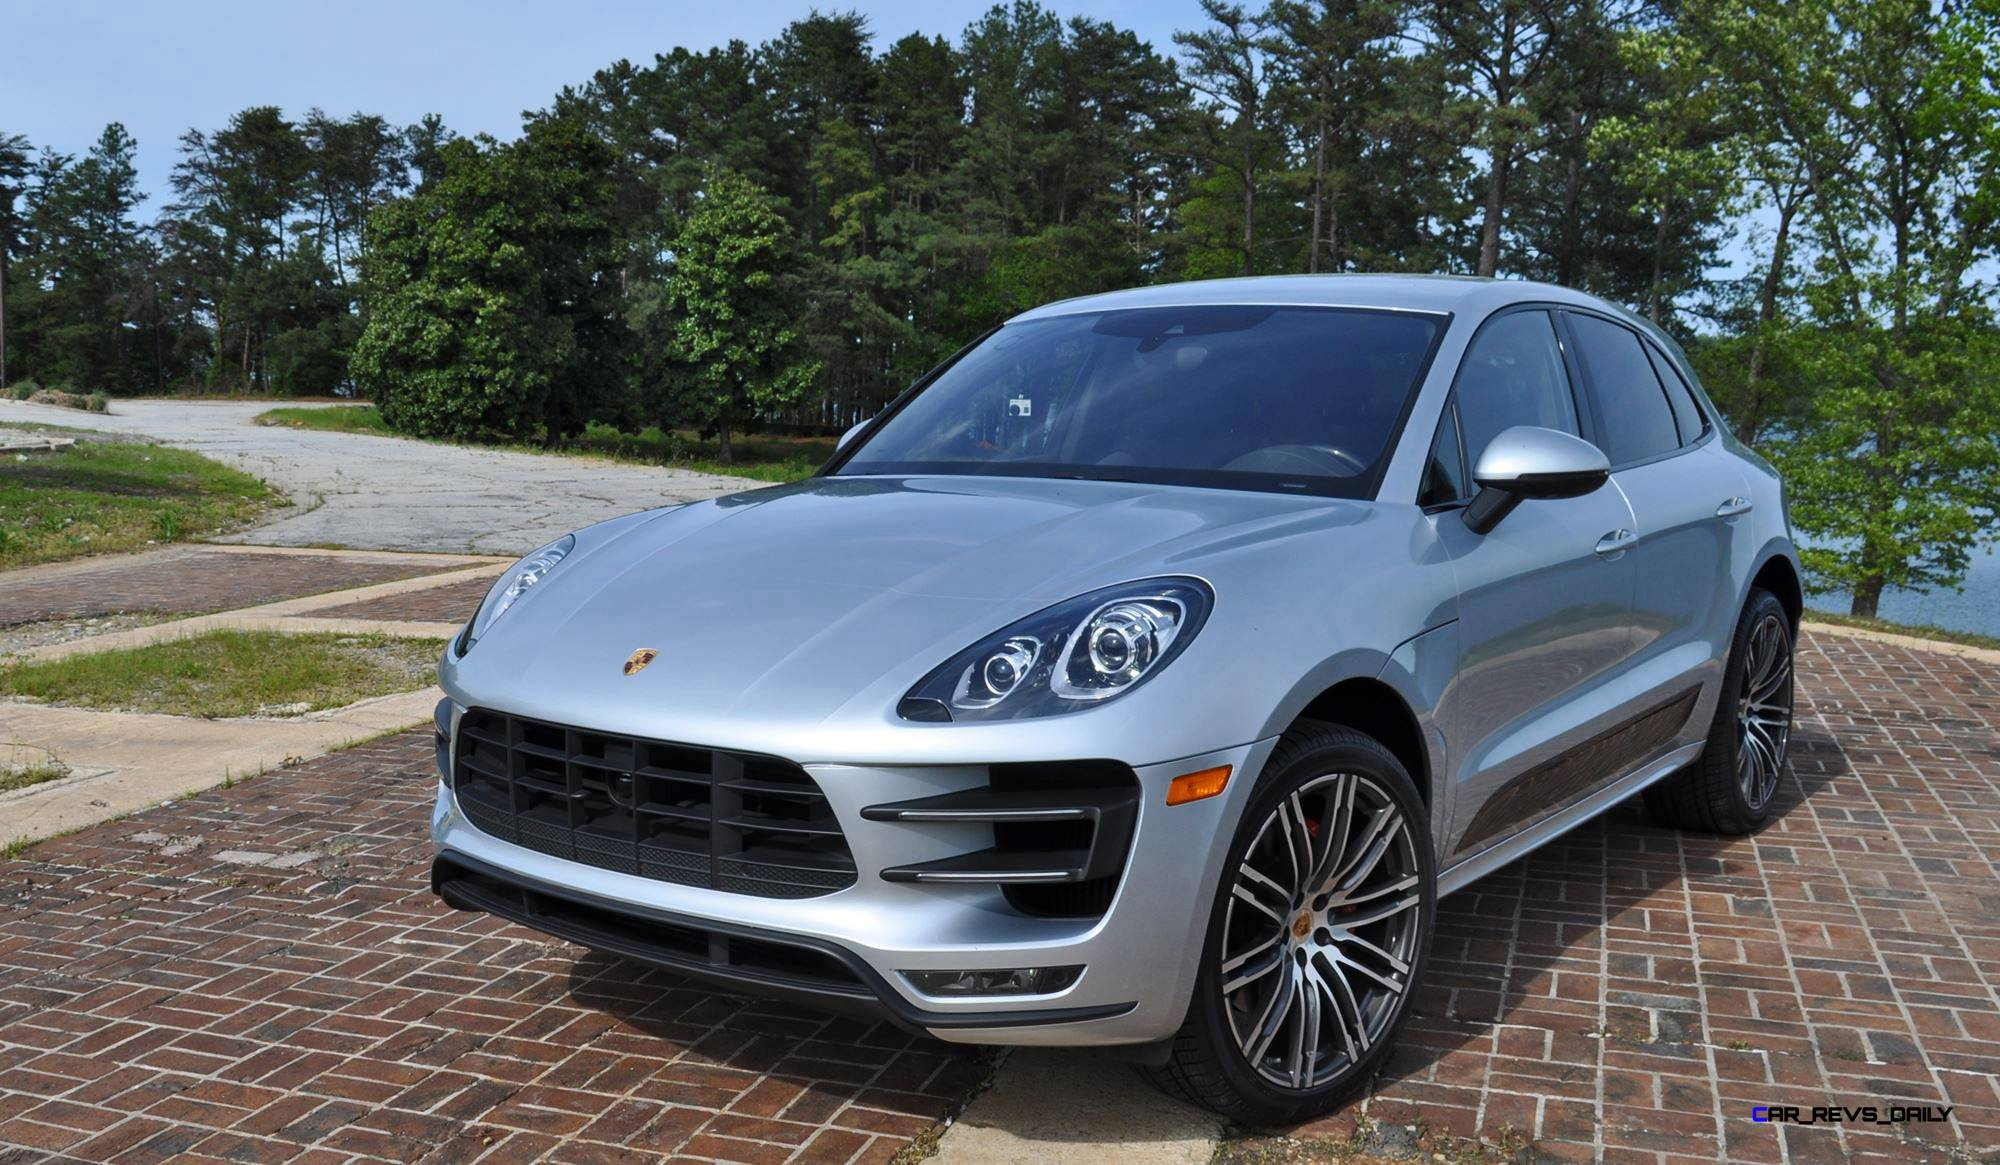 New 2015 Porsche MACAN TURBO Review